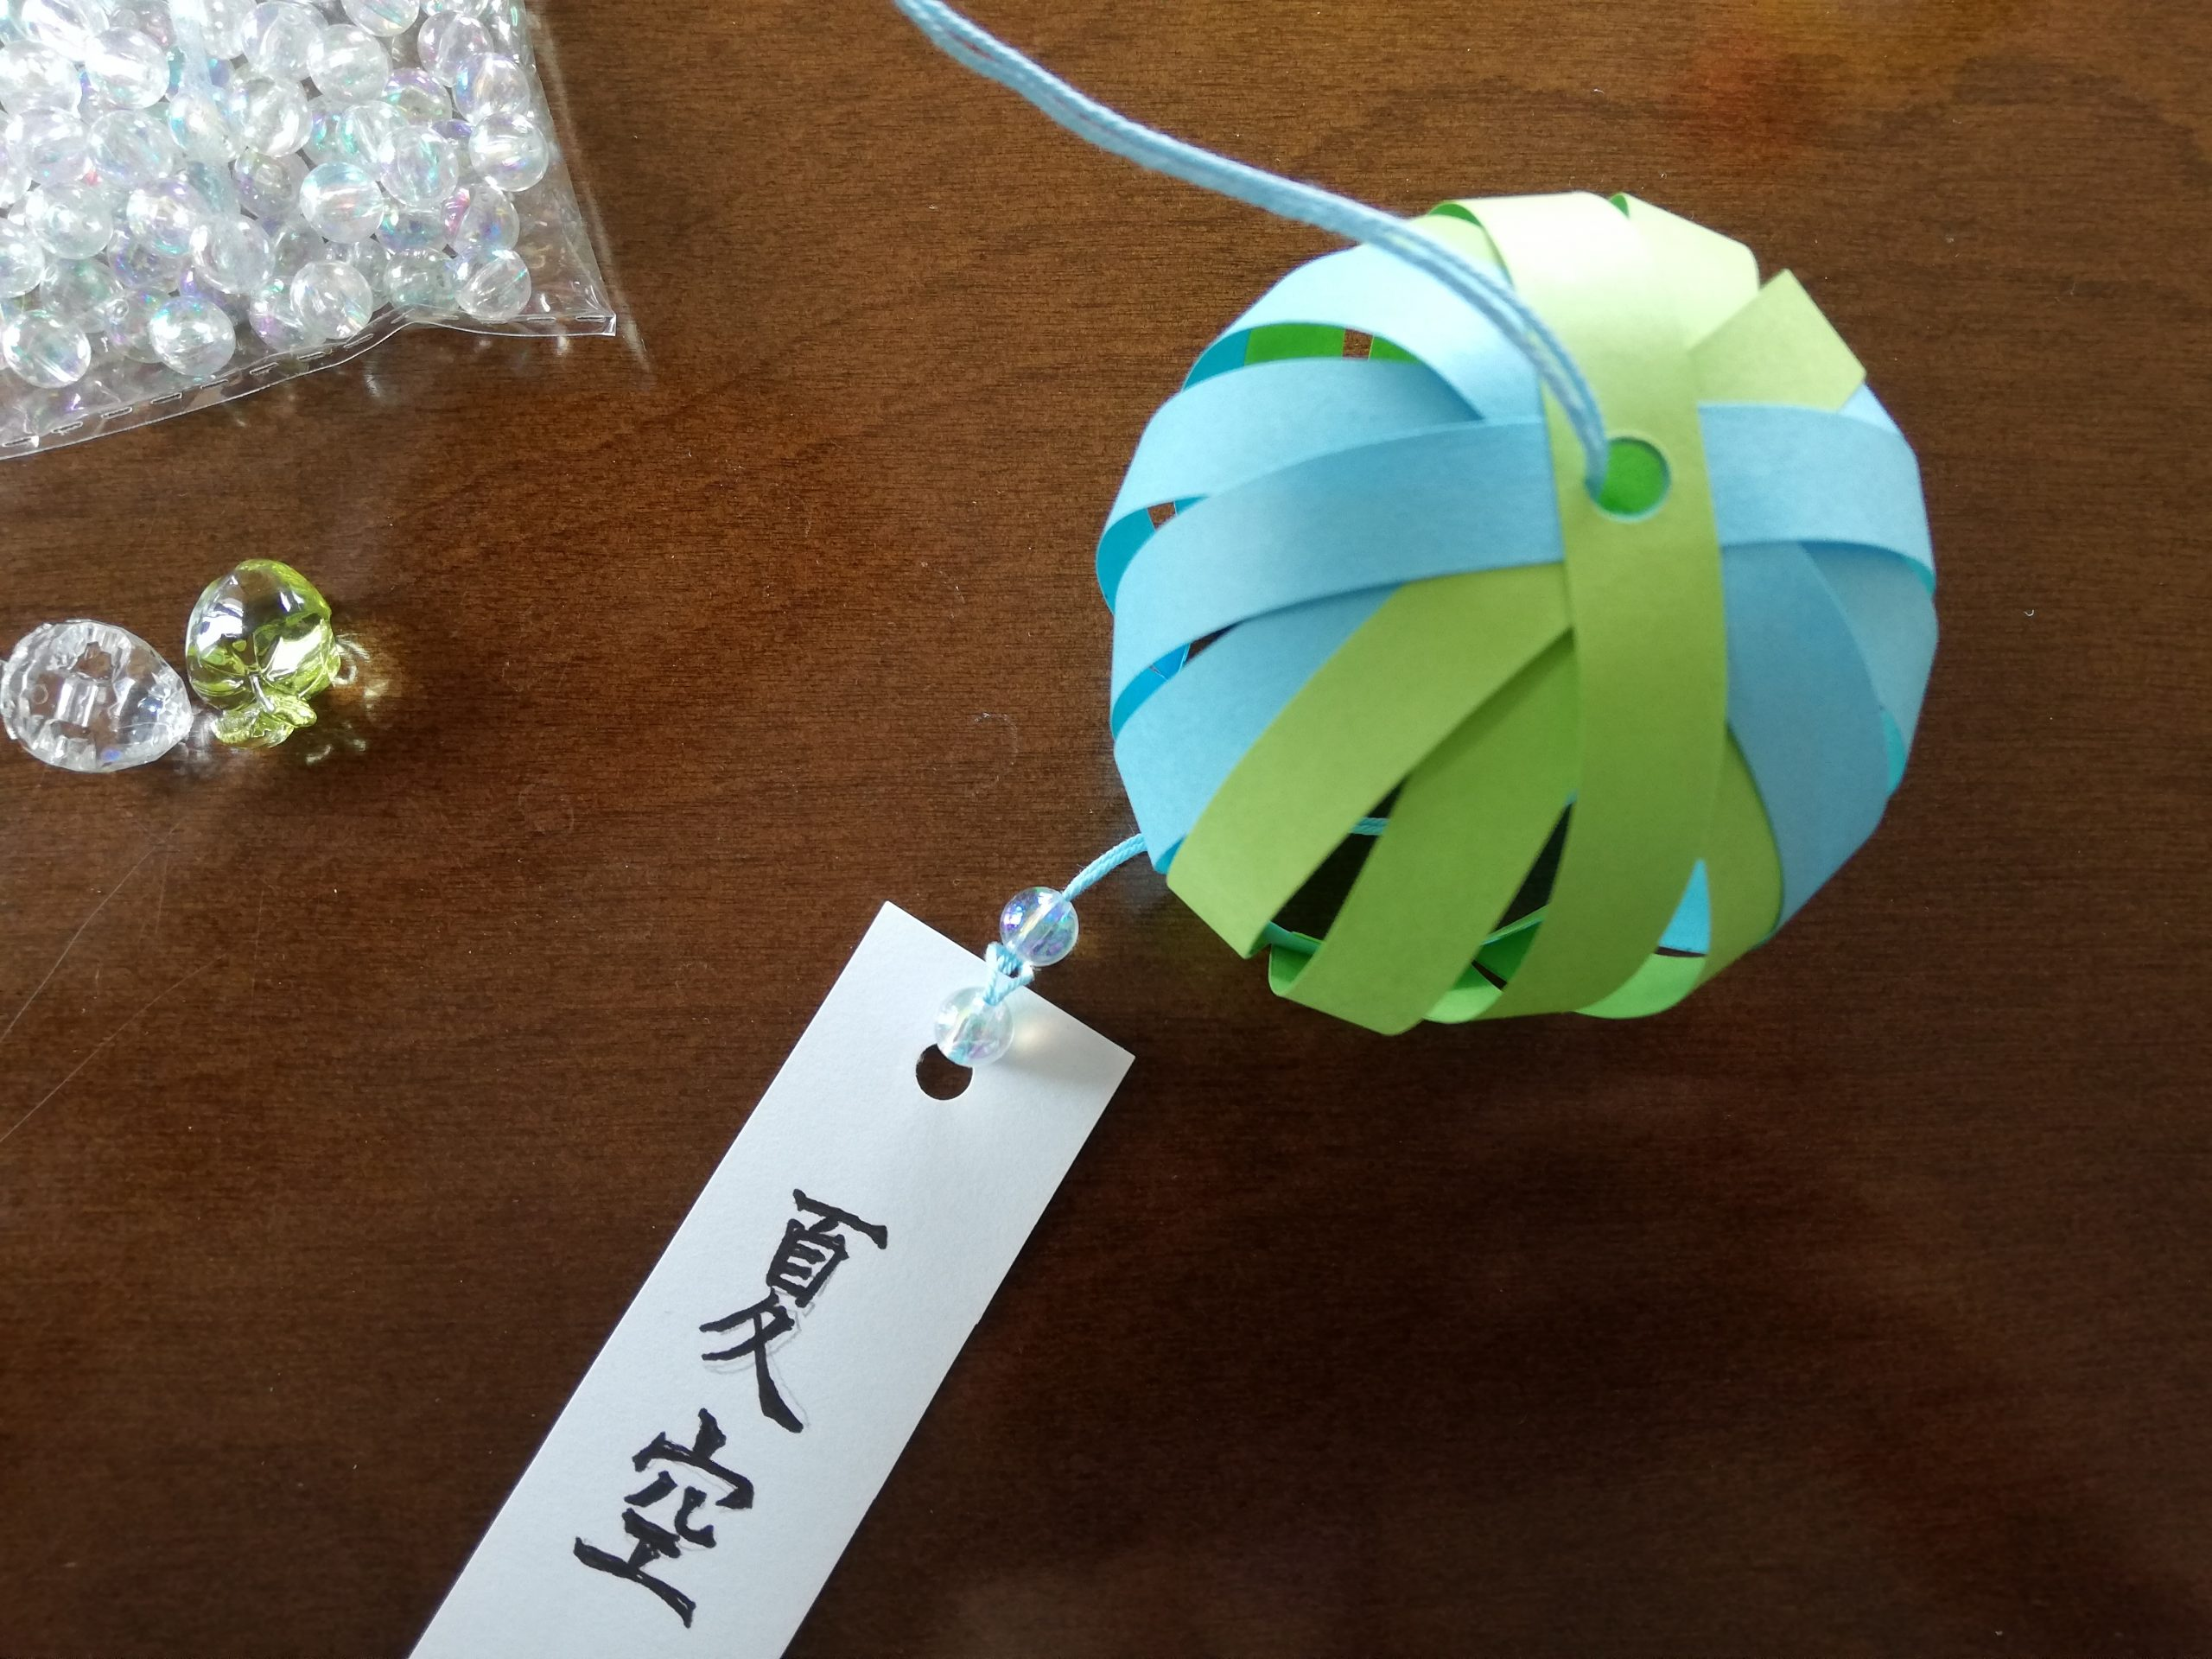 Origami: How to Keep Cool and Make a  Paper Wind Chime